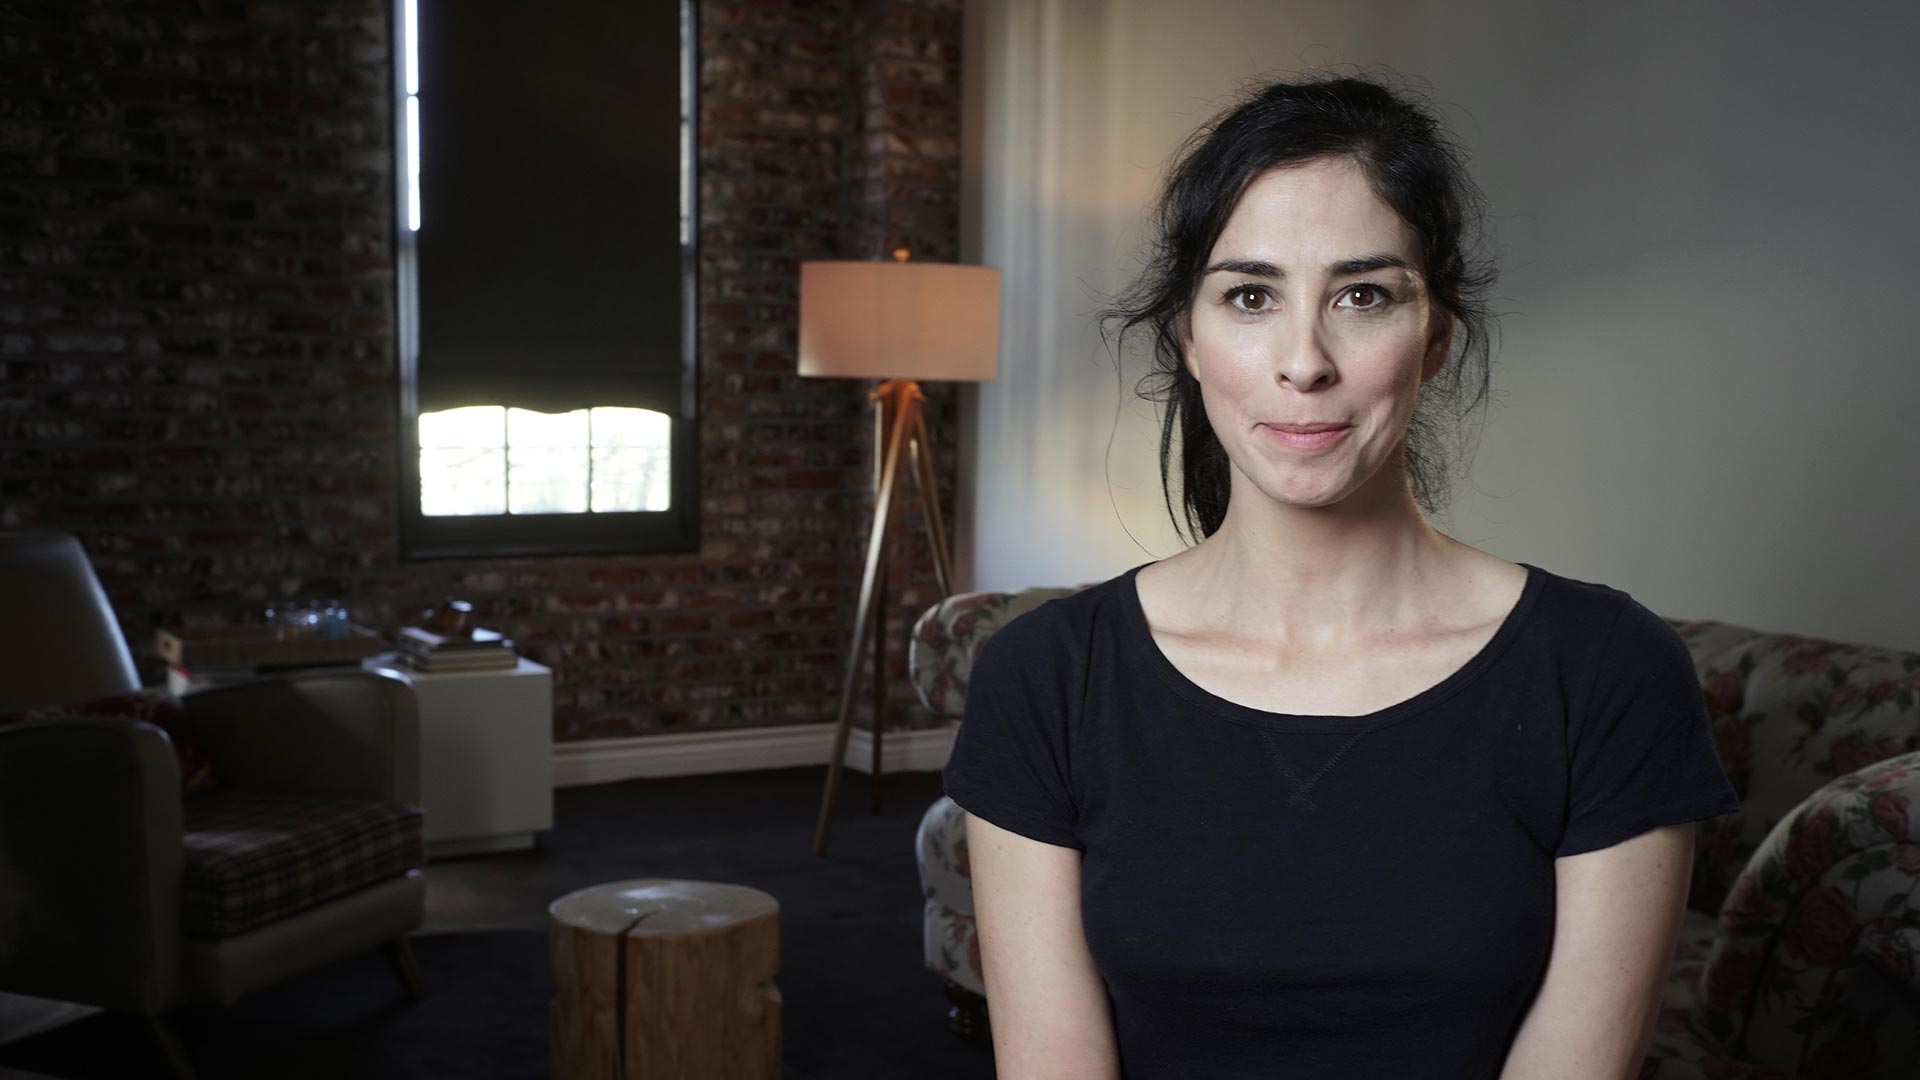 Sarah Silverman interviewed in The Last Laugh.